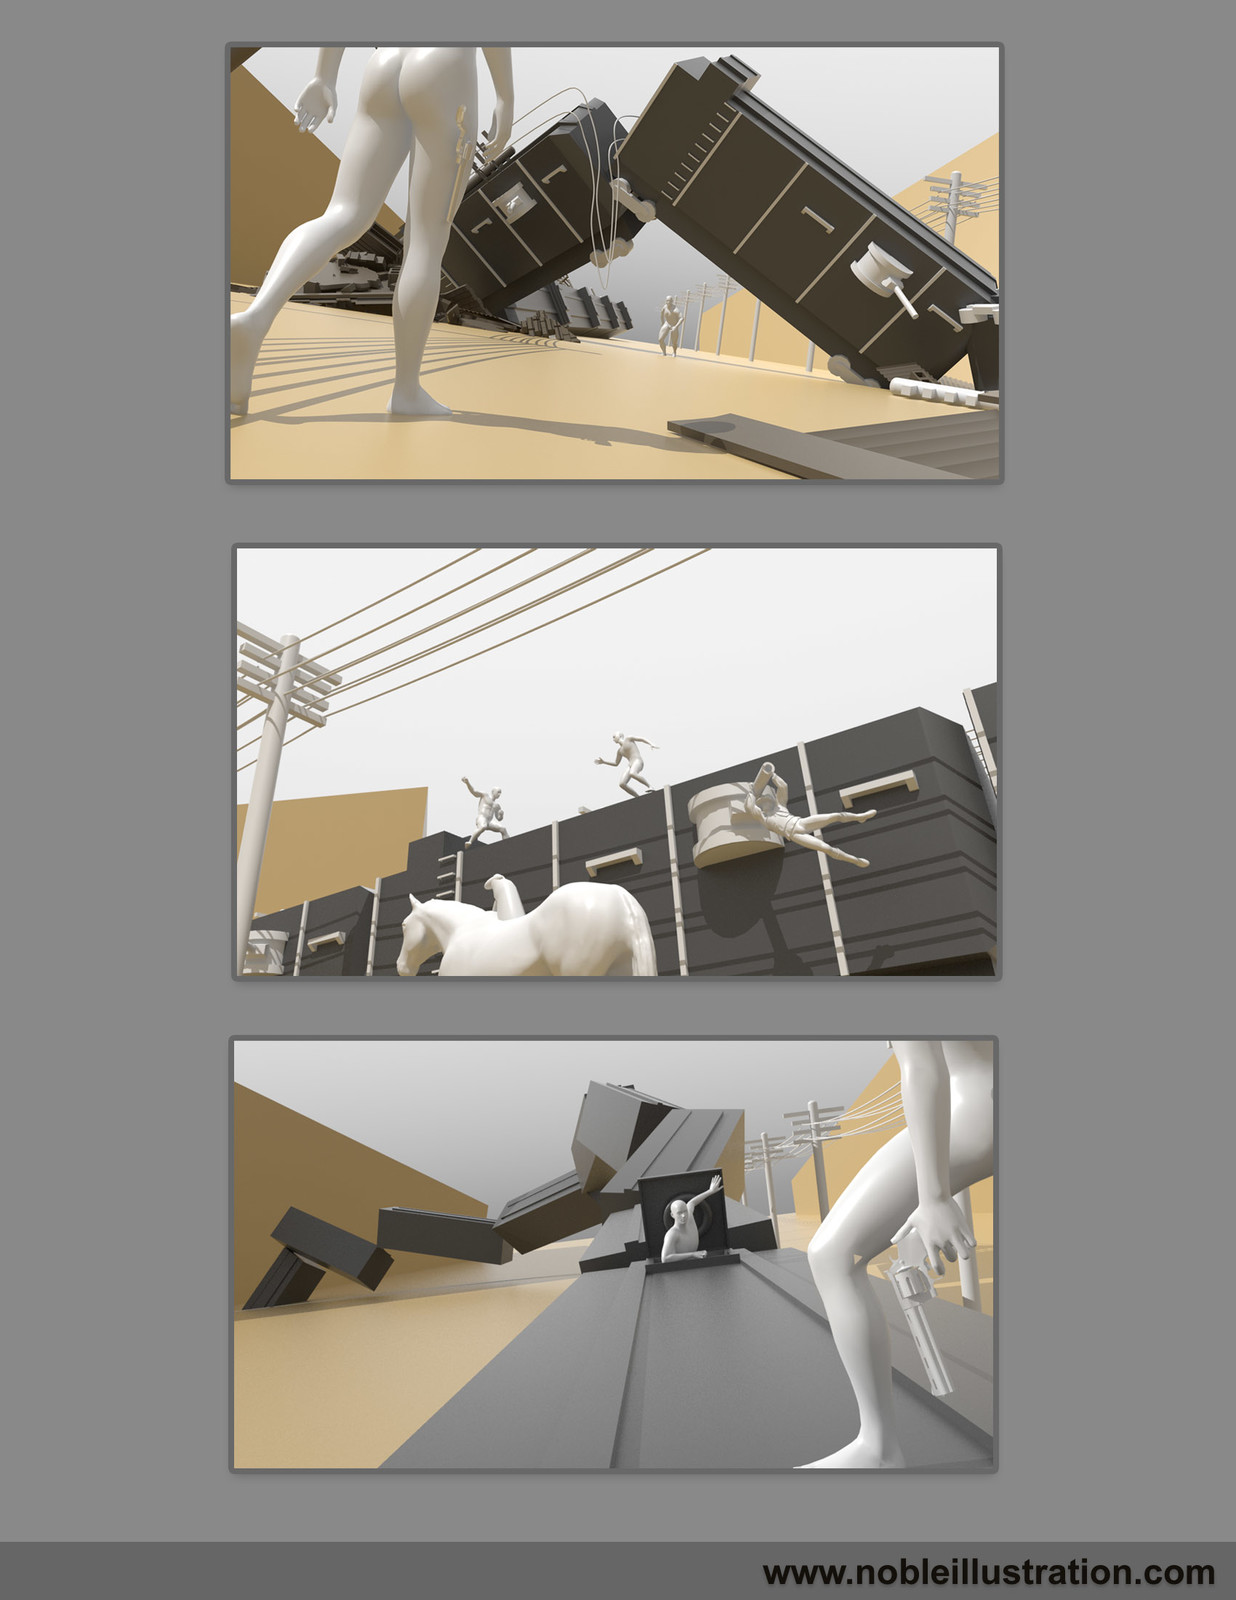 3D Block outs using MODO and DAZ Studio: This process helps me develop a more realistic perspective and lighting.  I might work over top of these Renders or just refer to them as I work.  This stage can be very helpful.